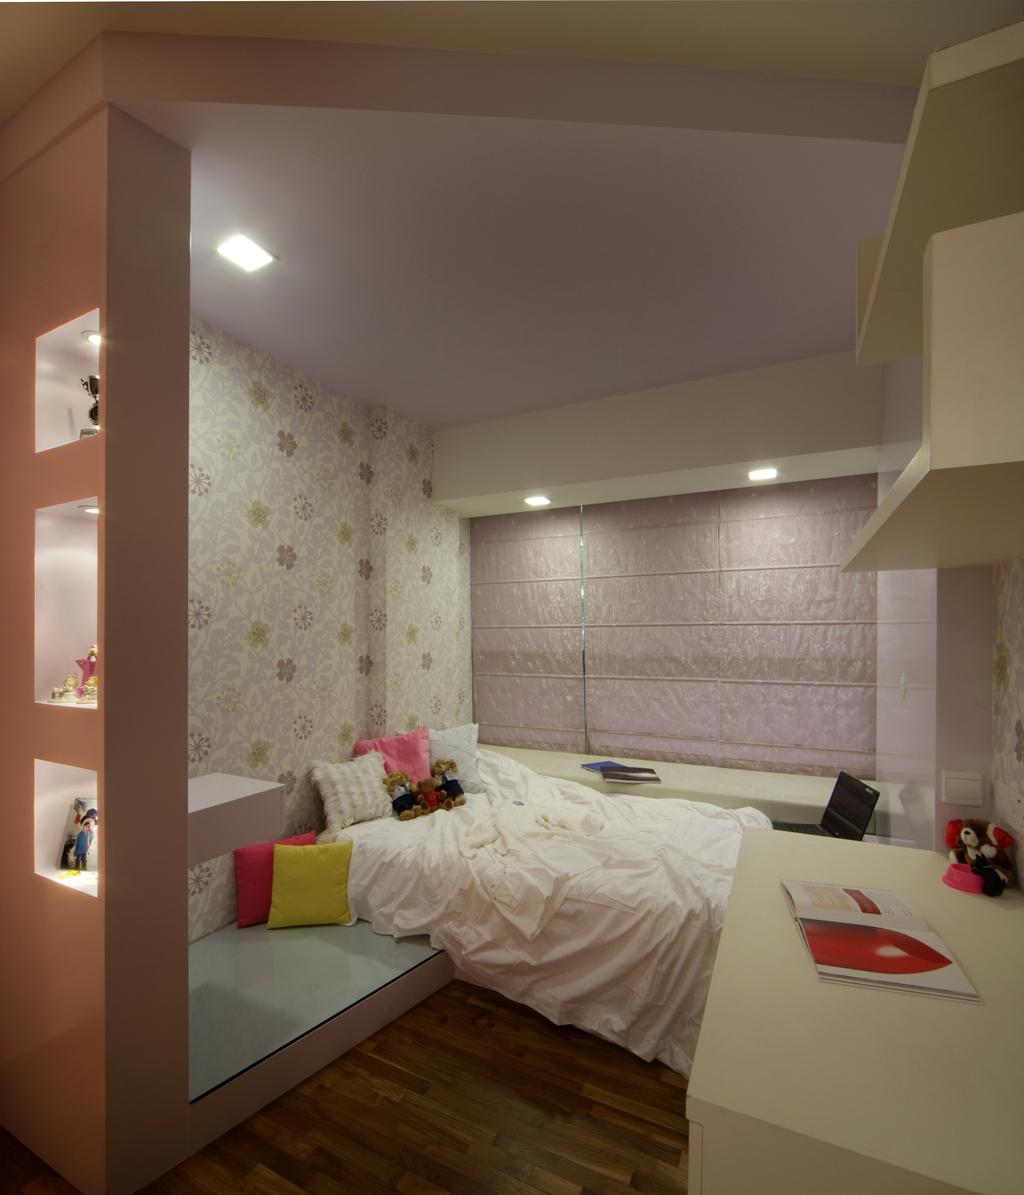 Transitional, Condo, Bedroom, Calrose, Interior Designer, Yonder, Study Desk, Shelving, Bed, Wall Paper, Partition, Disolay, Down Light, Blinds, Parquet, Molding, Indoors, Interior Design, Room